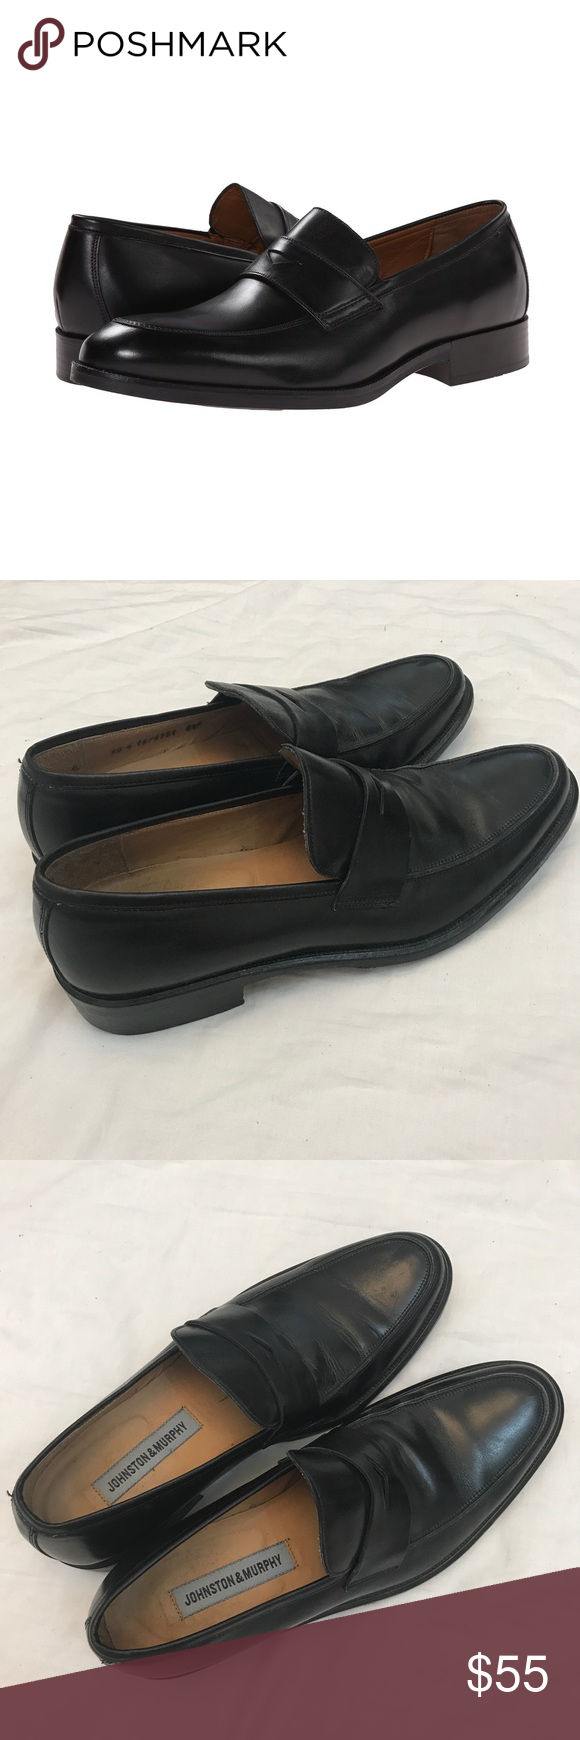 74e497a4cd0 Johnston   Murphy Beckwith Penny Loafers Johnston and Murphy men s black beckwith  penny loafers dress shoes